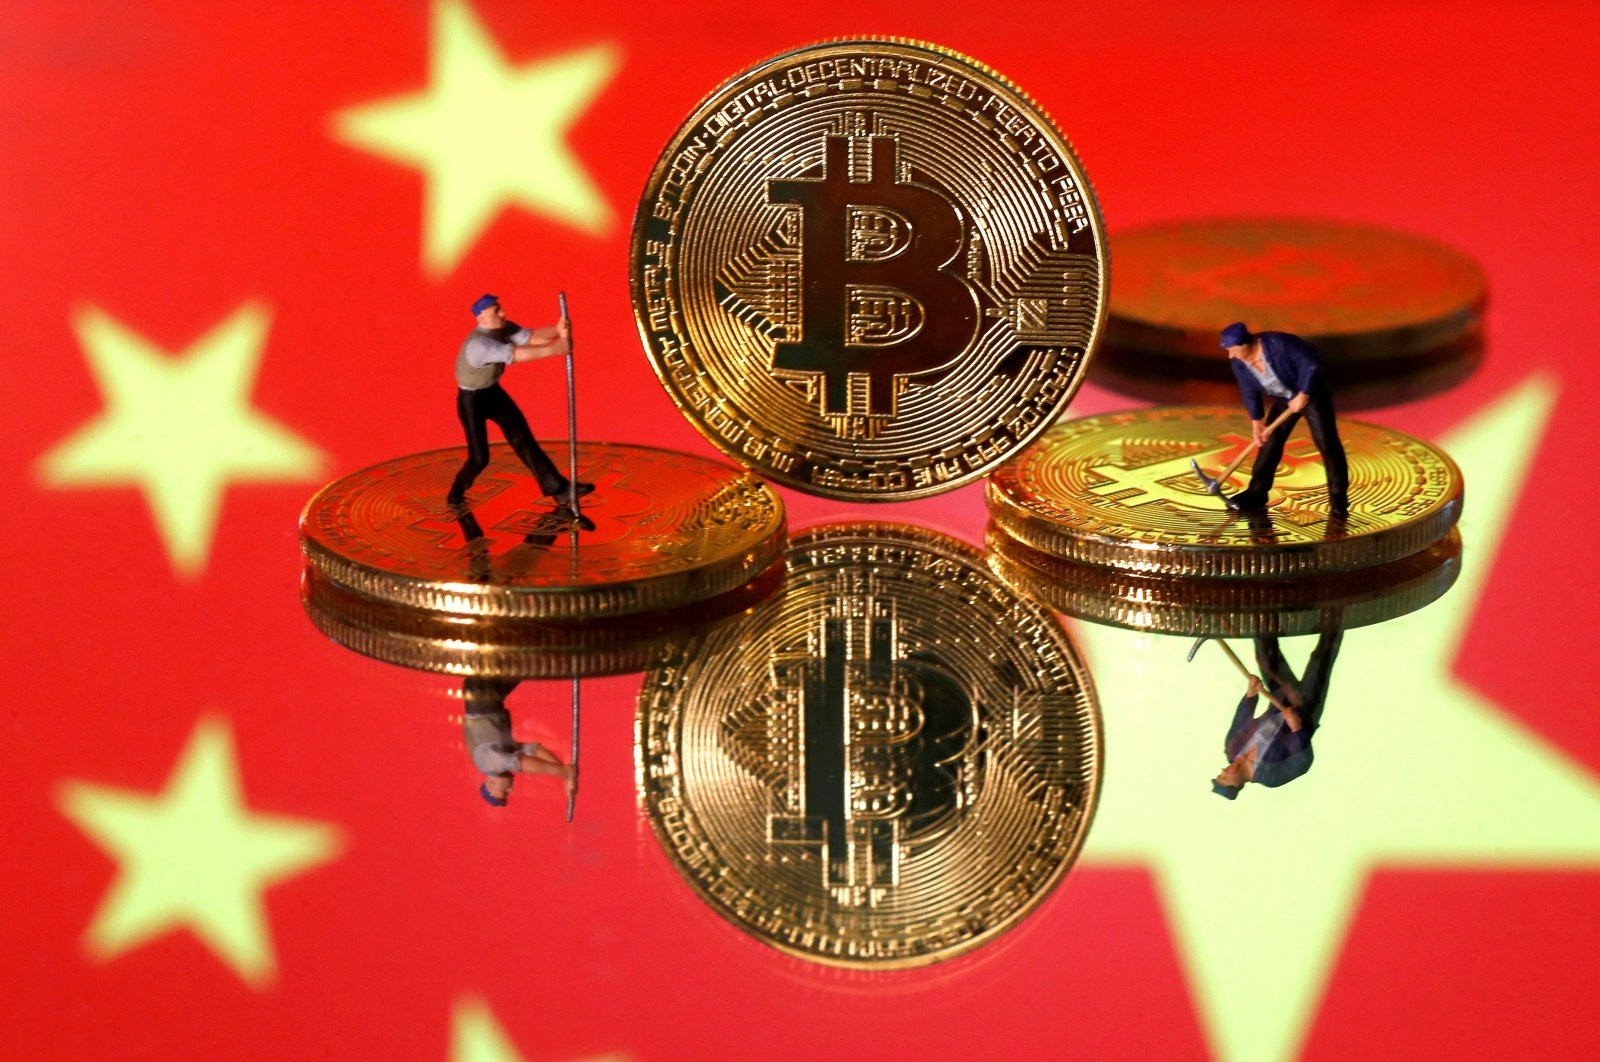 Small toy figurines are seen on representations of the Bitcoin virtual currency displayed in front of an image of China's flag in this illustration picture, April 9, 2019. (Reuters Photo)